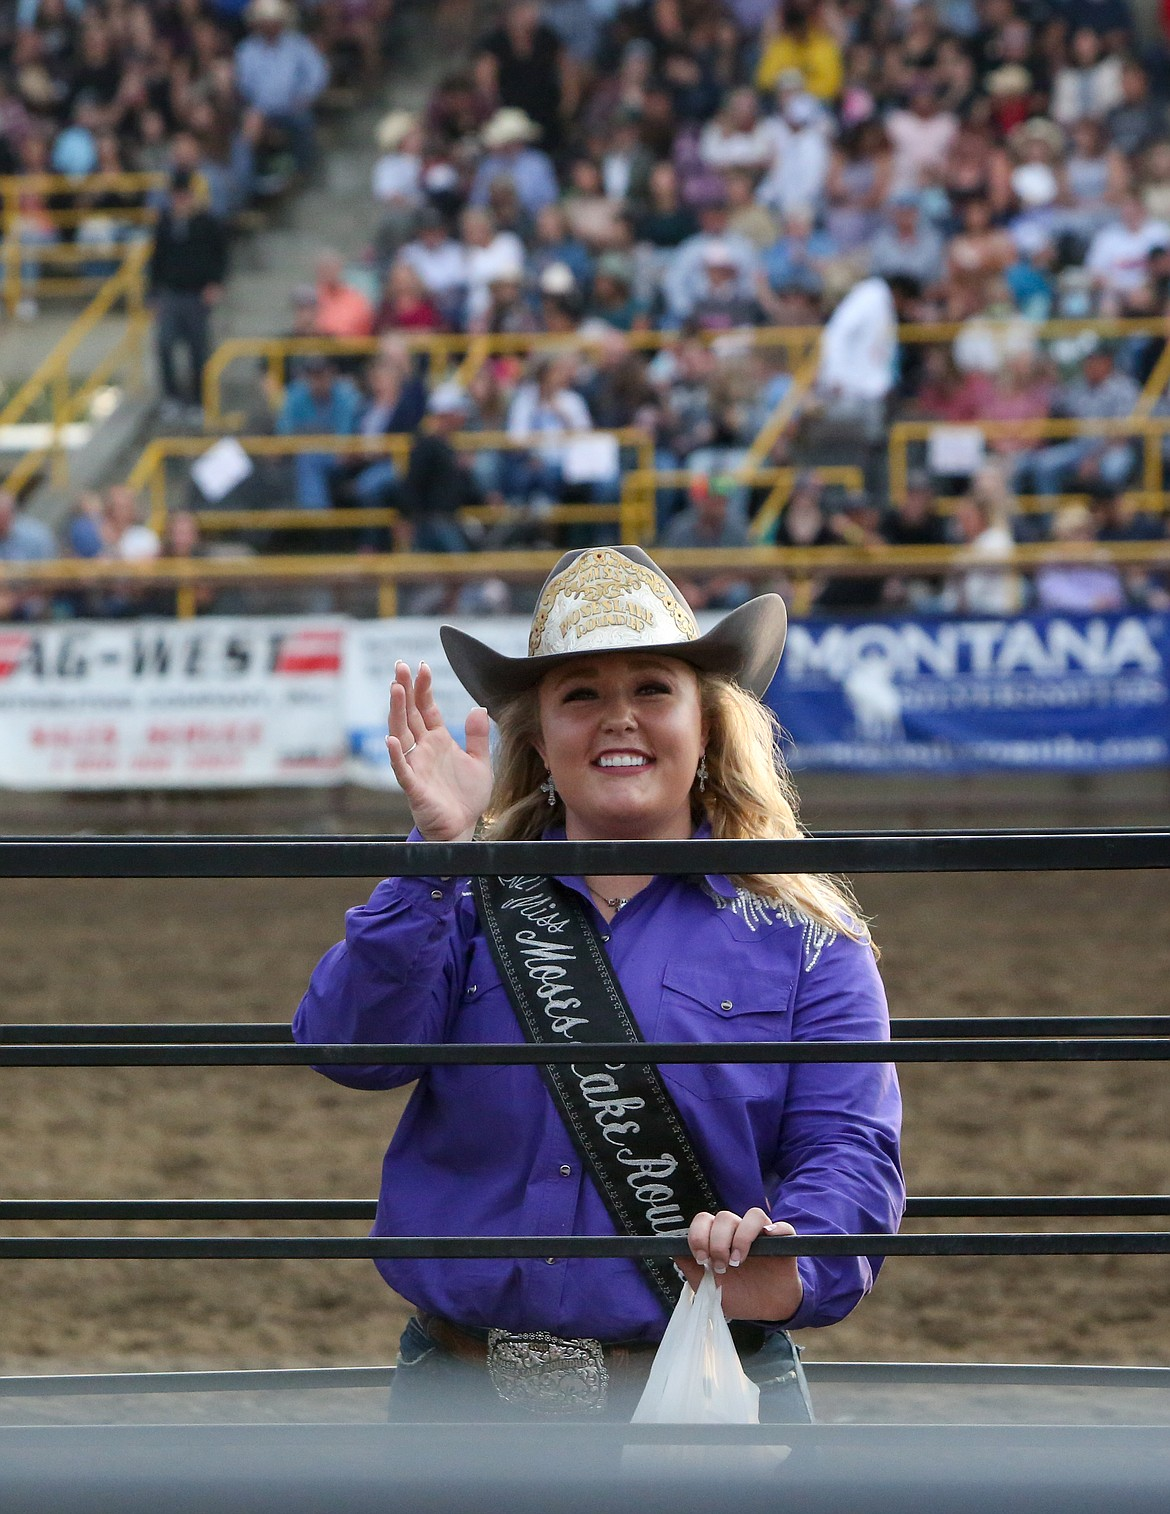 Moses Lake Roundup Queen Mykiah Hollenbeck waves to the crowd from the arena on Saturday night at the Moses Lake Roundup.